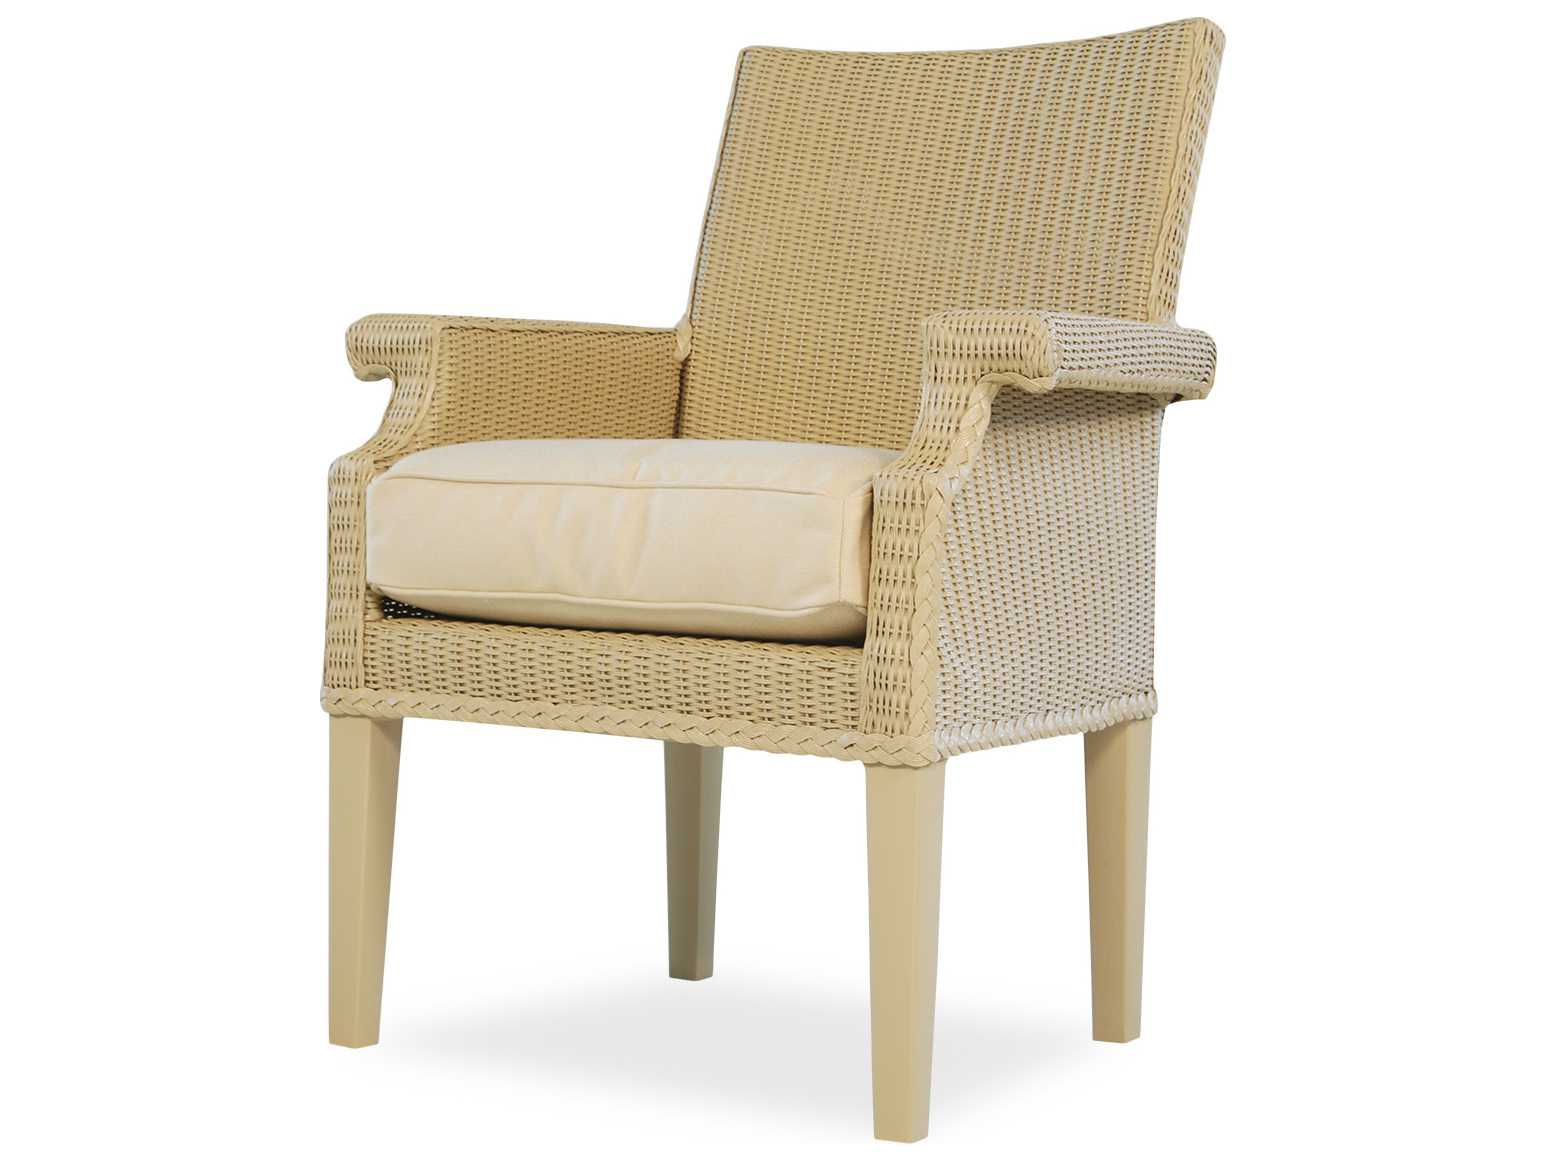 replacement dining room chairs   Lloyd Flanders Hamptons Dining Chair Replacement Cushions ...